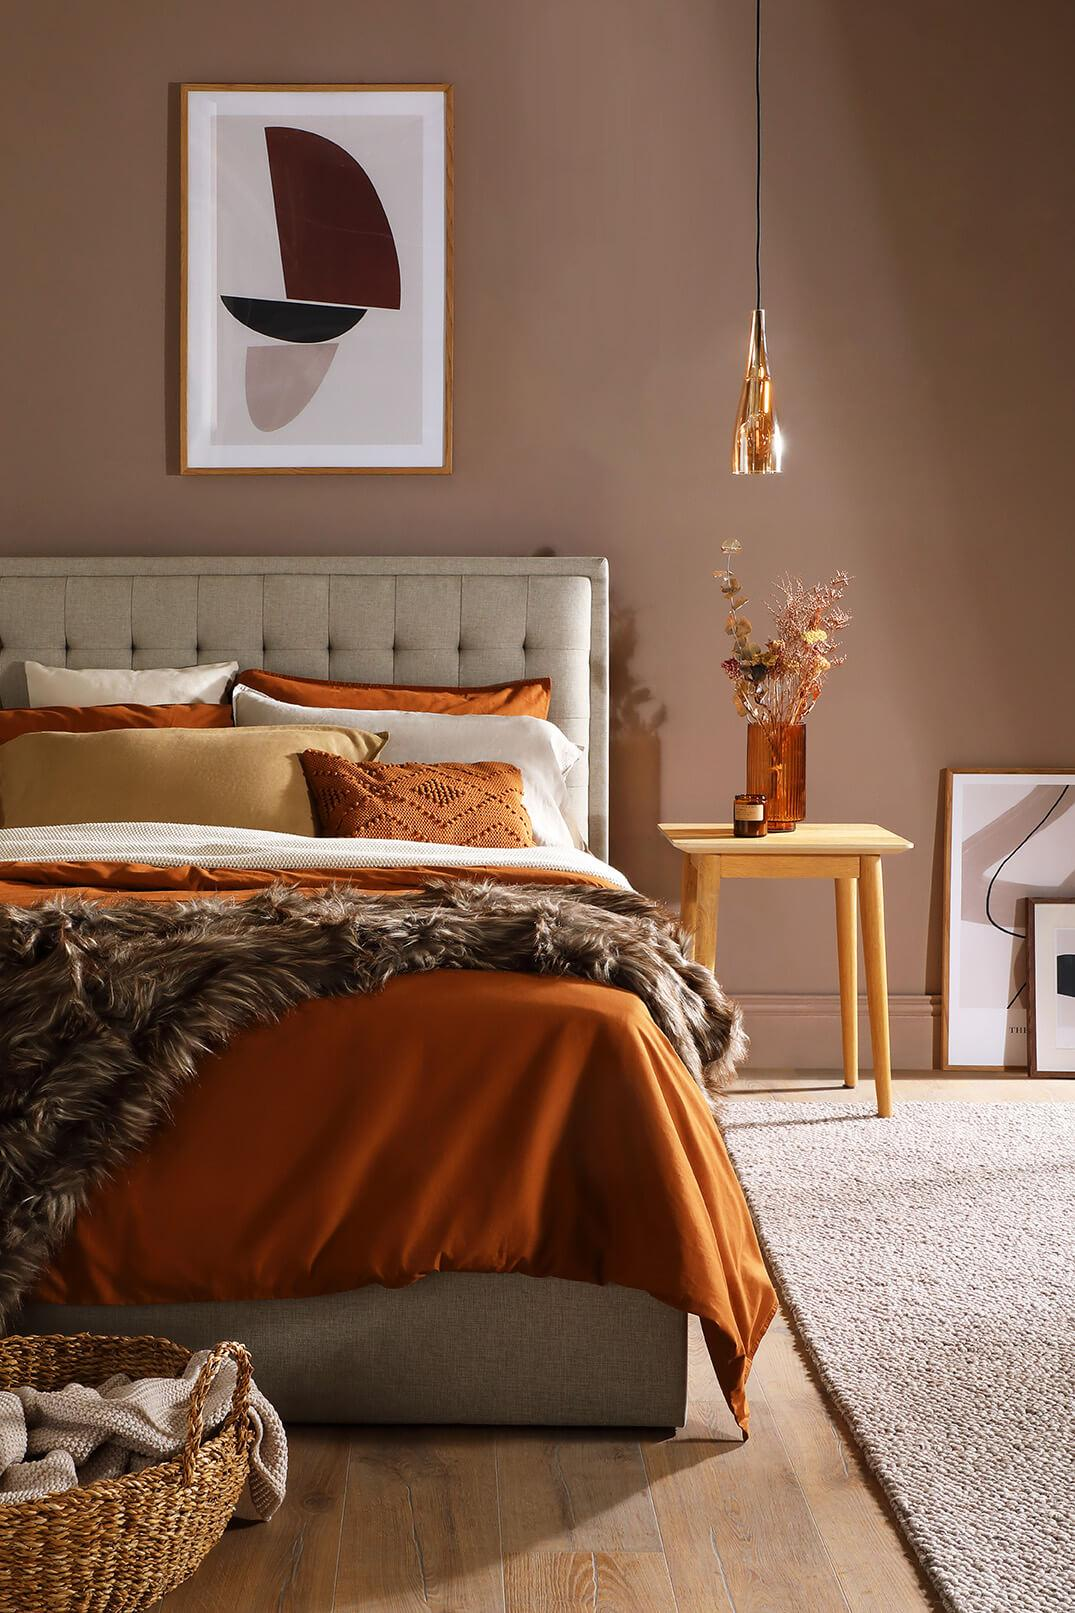 Cosy materials and earthy hues are warm and inviting.